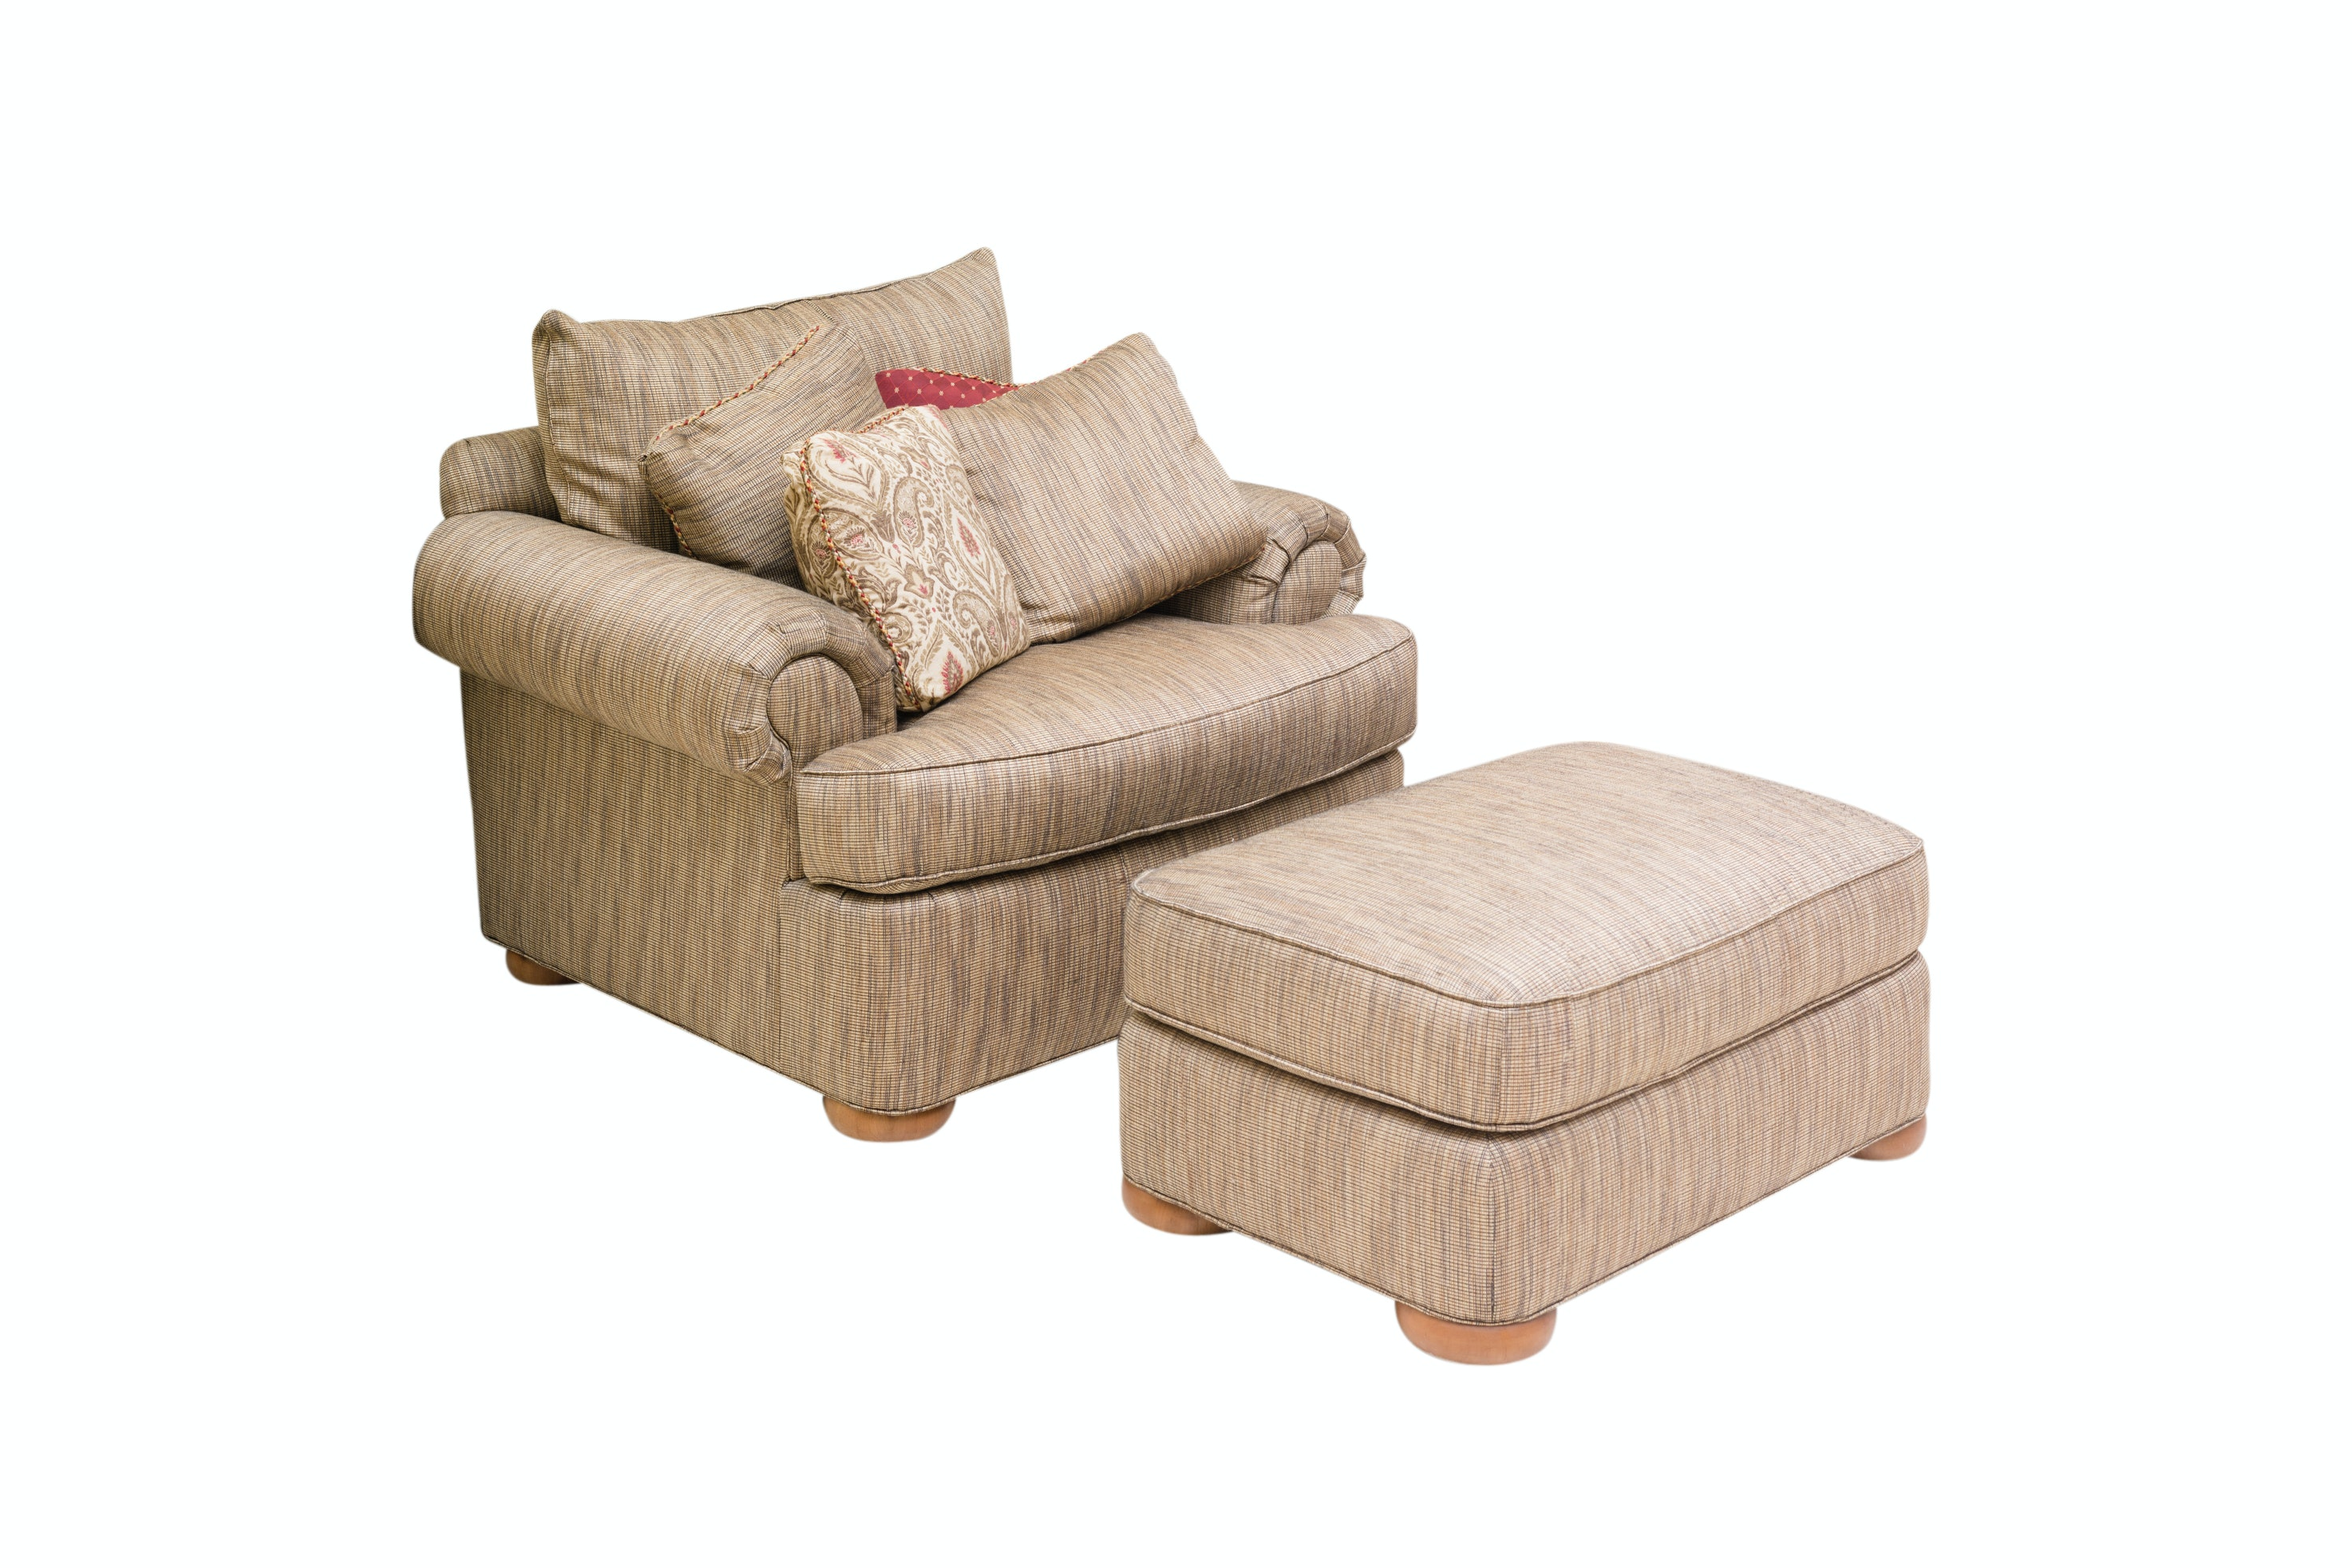 Upholstered Lounge Chair and Ottoman by Thomasville